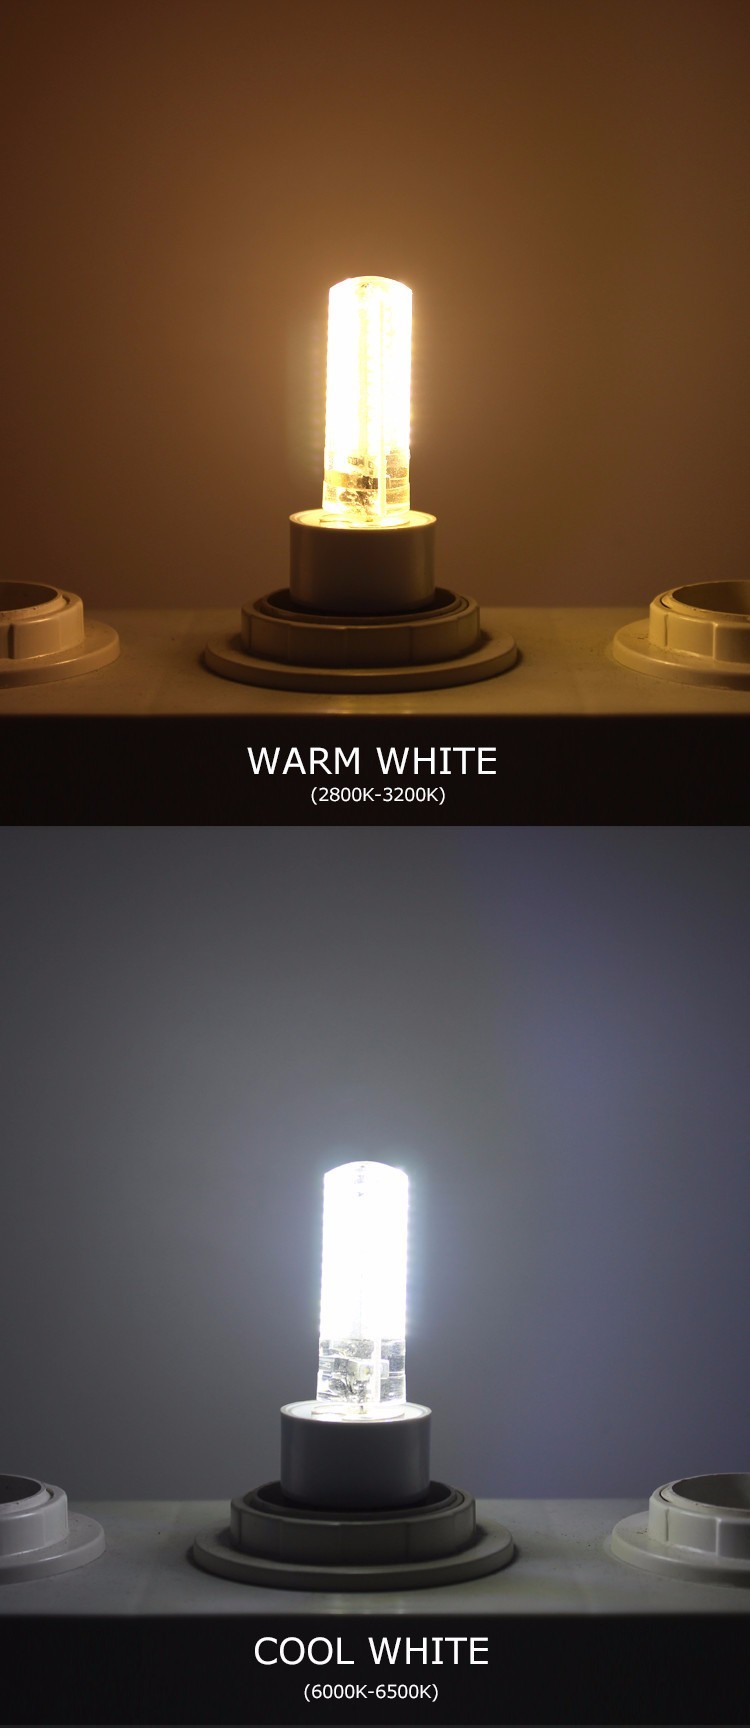 Led Corn Light G4 Bulb 220v 3w 4w 5w 6w 7w 9w 10w Spot Smd Chip 5730 Putih Cold White 32 34v Diy Getsubject Aeproductgetsubject